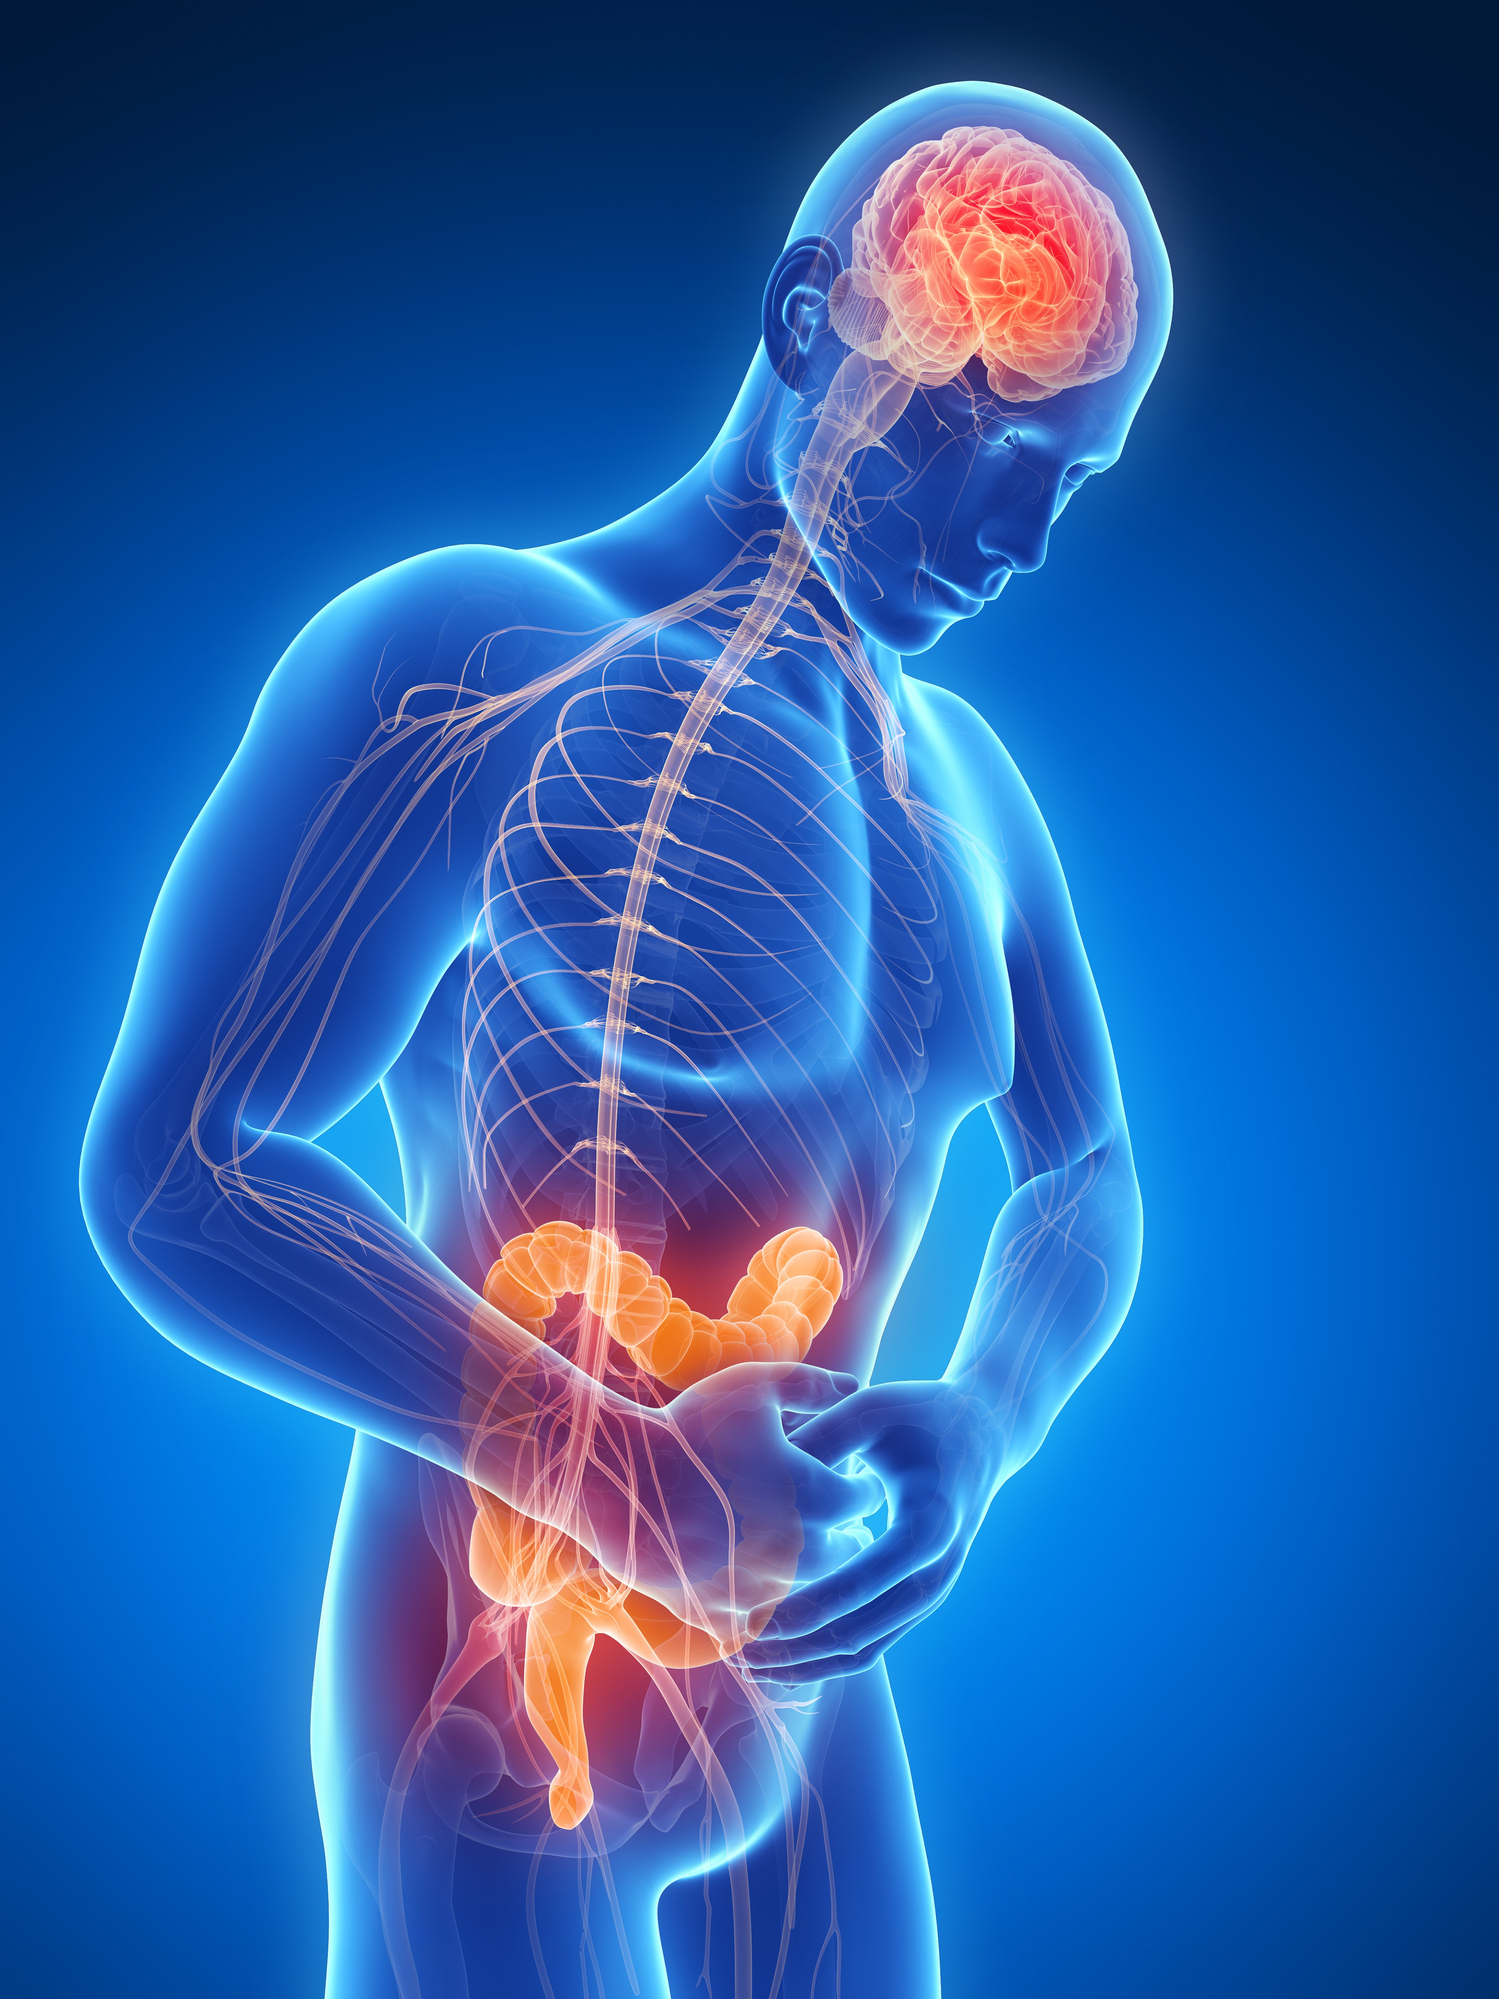 Depressed Brain and Gut Mediated by Serotonin Levels